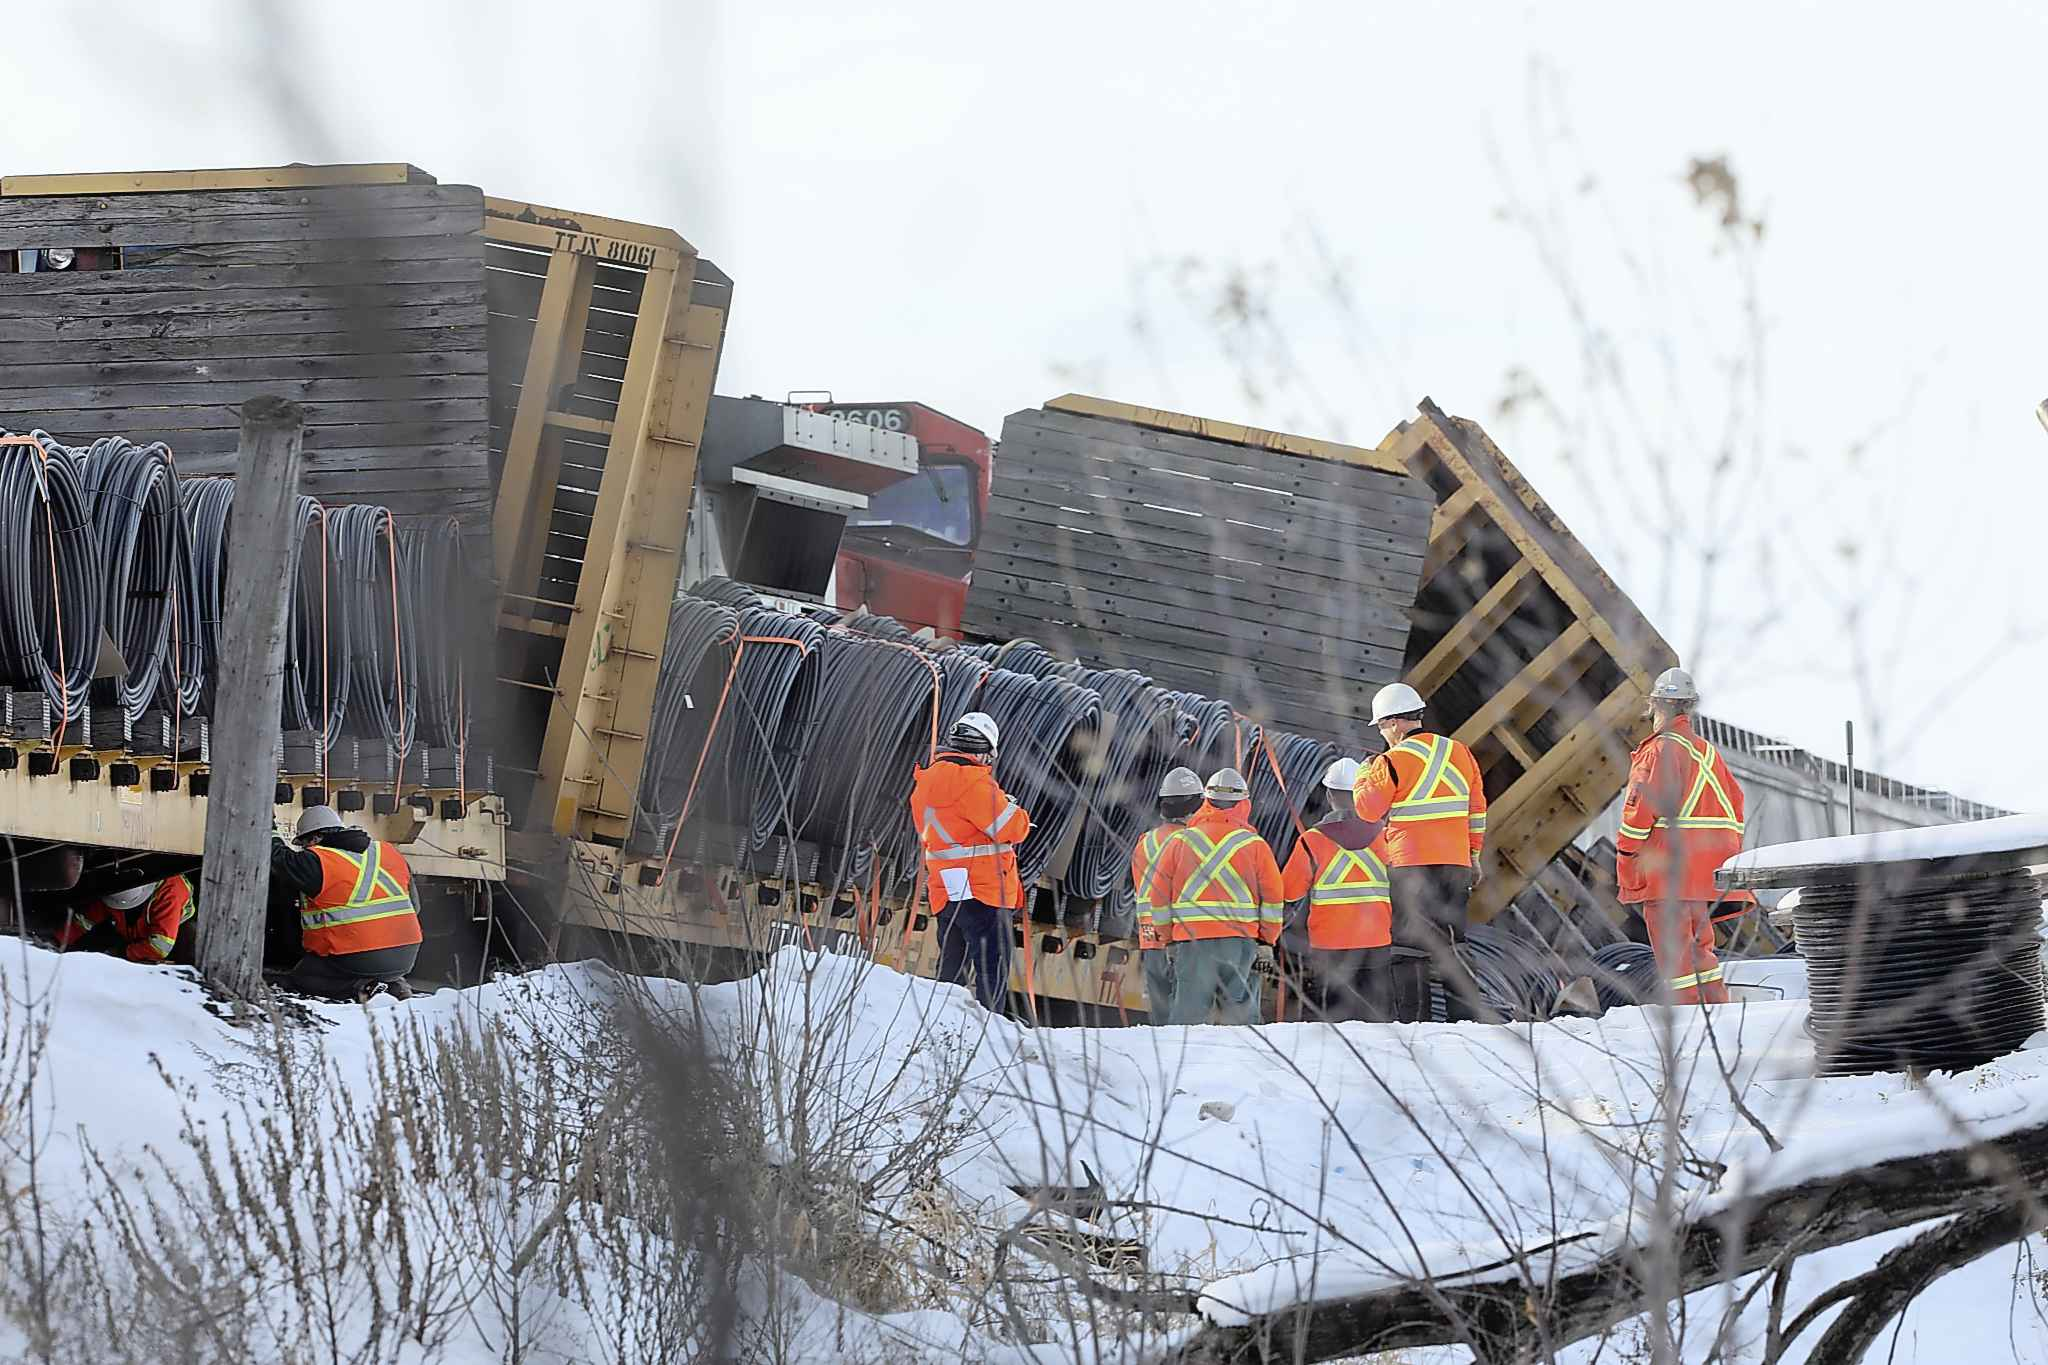 One of two trains that derailed near Portage la Prairie last Thursday was transporting hazardous goods. (Winnipeg Free Press files)